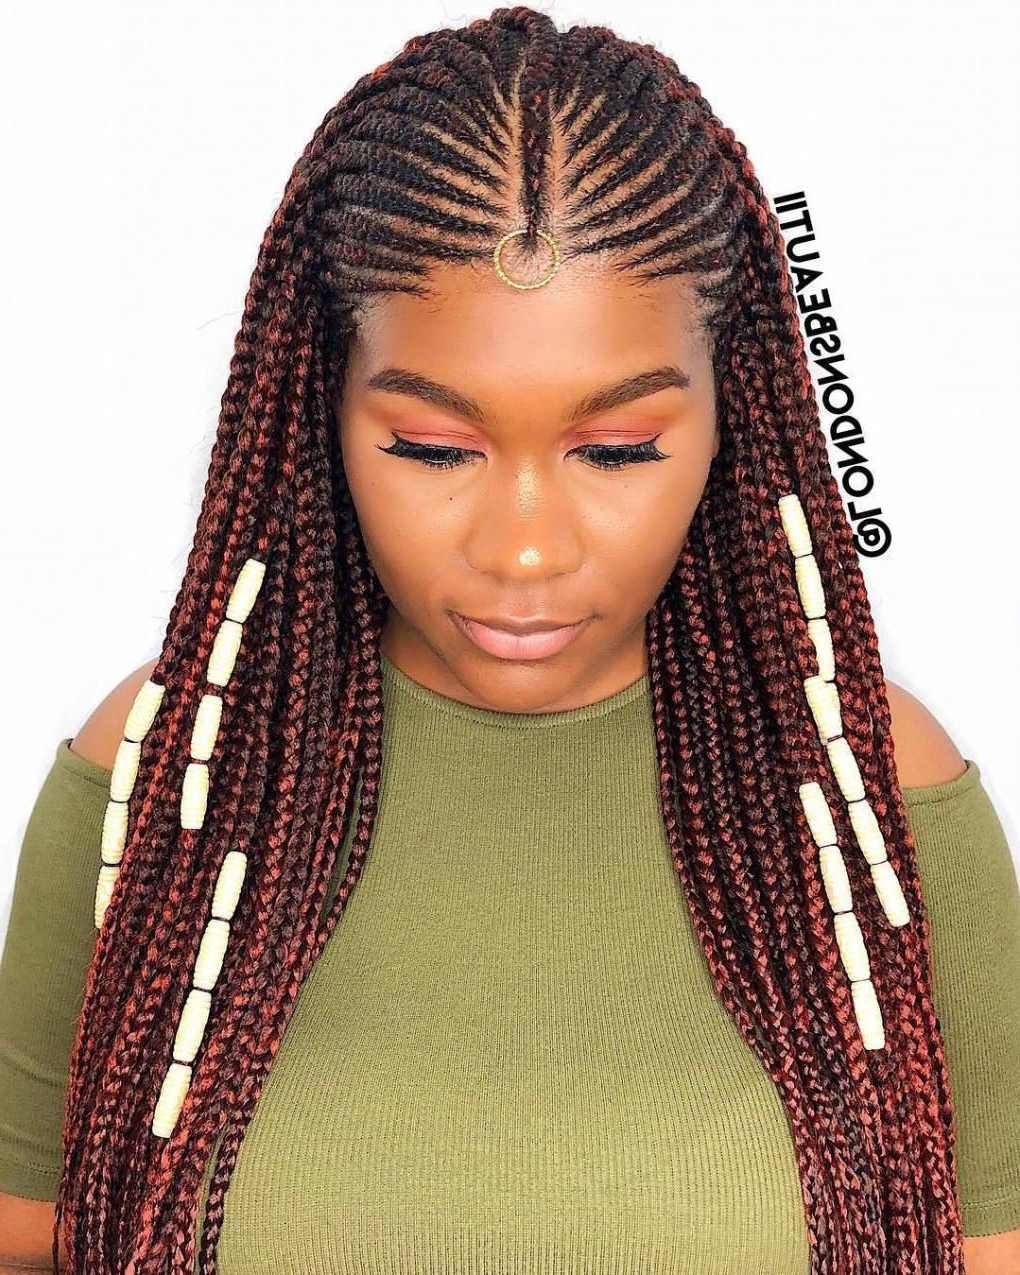 20 Amazing Fulani Braids For Women Of All Ages In 2019 With Famous Braided Crown Hairstyles With Bright Beads (View 3 of 20)